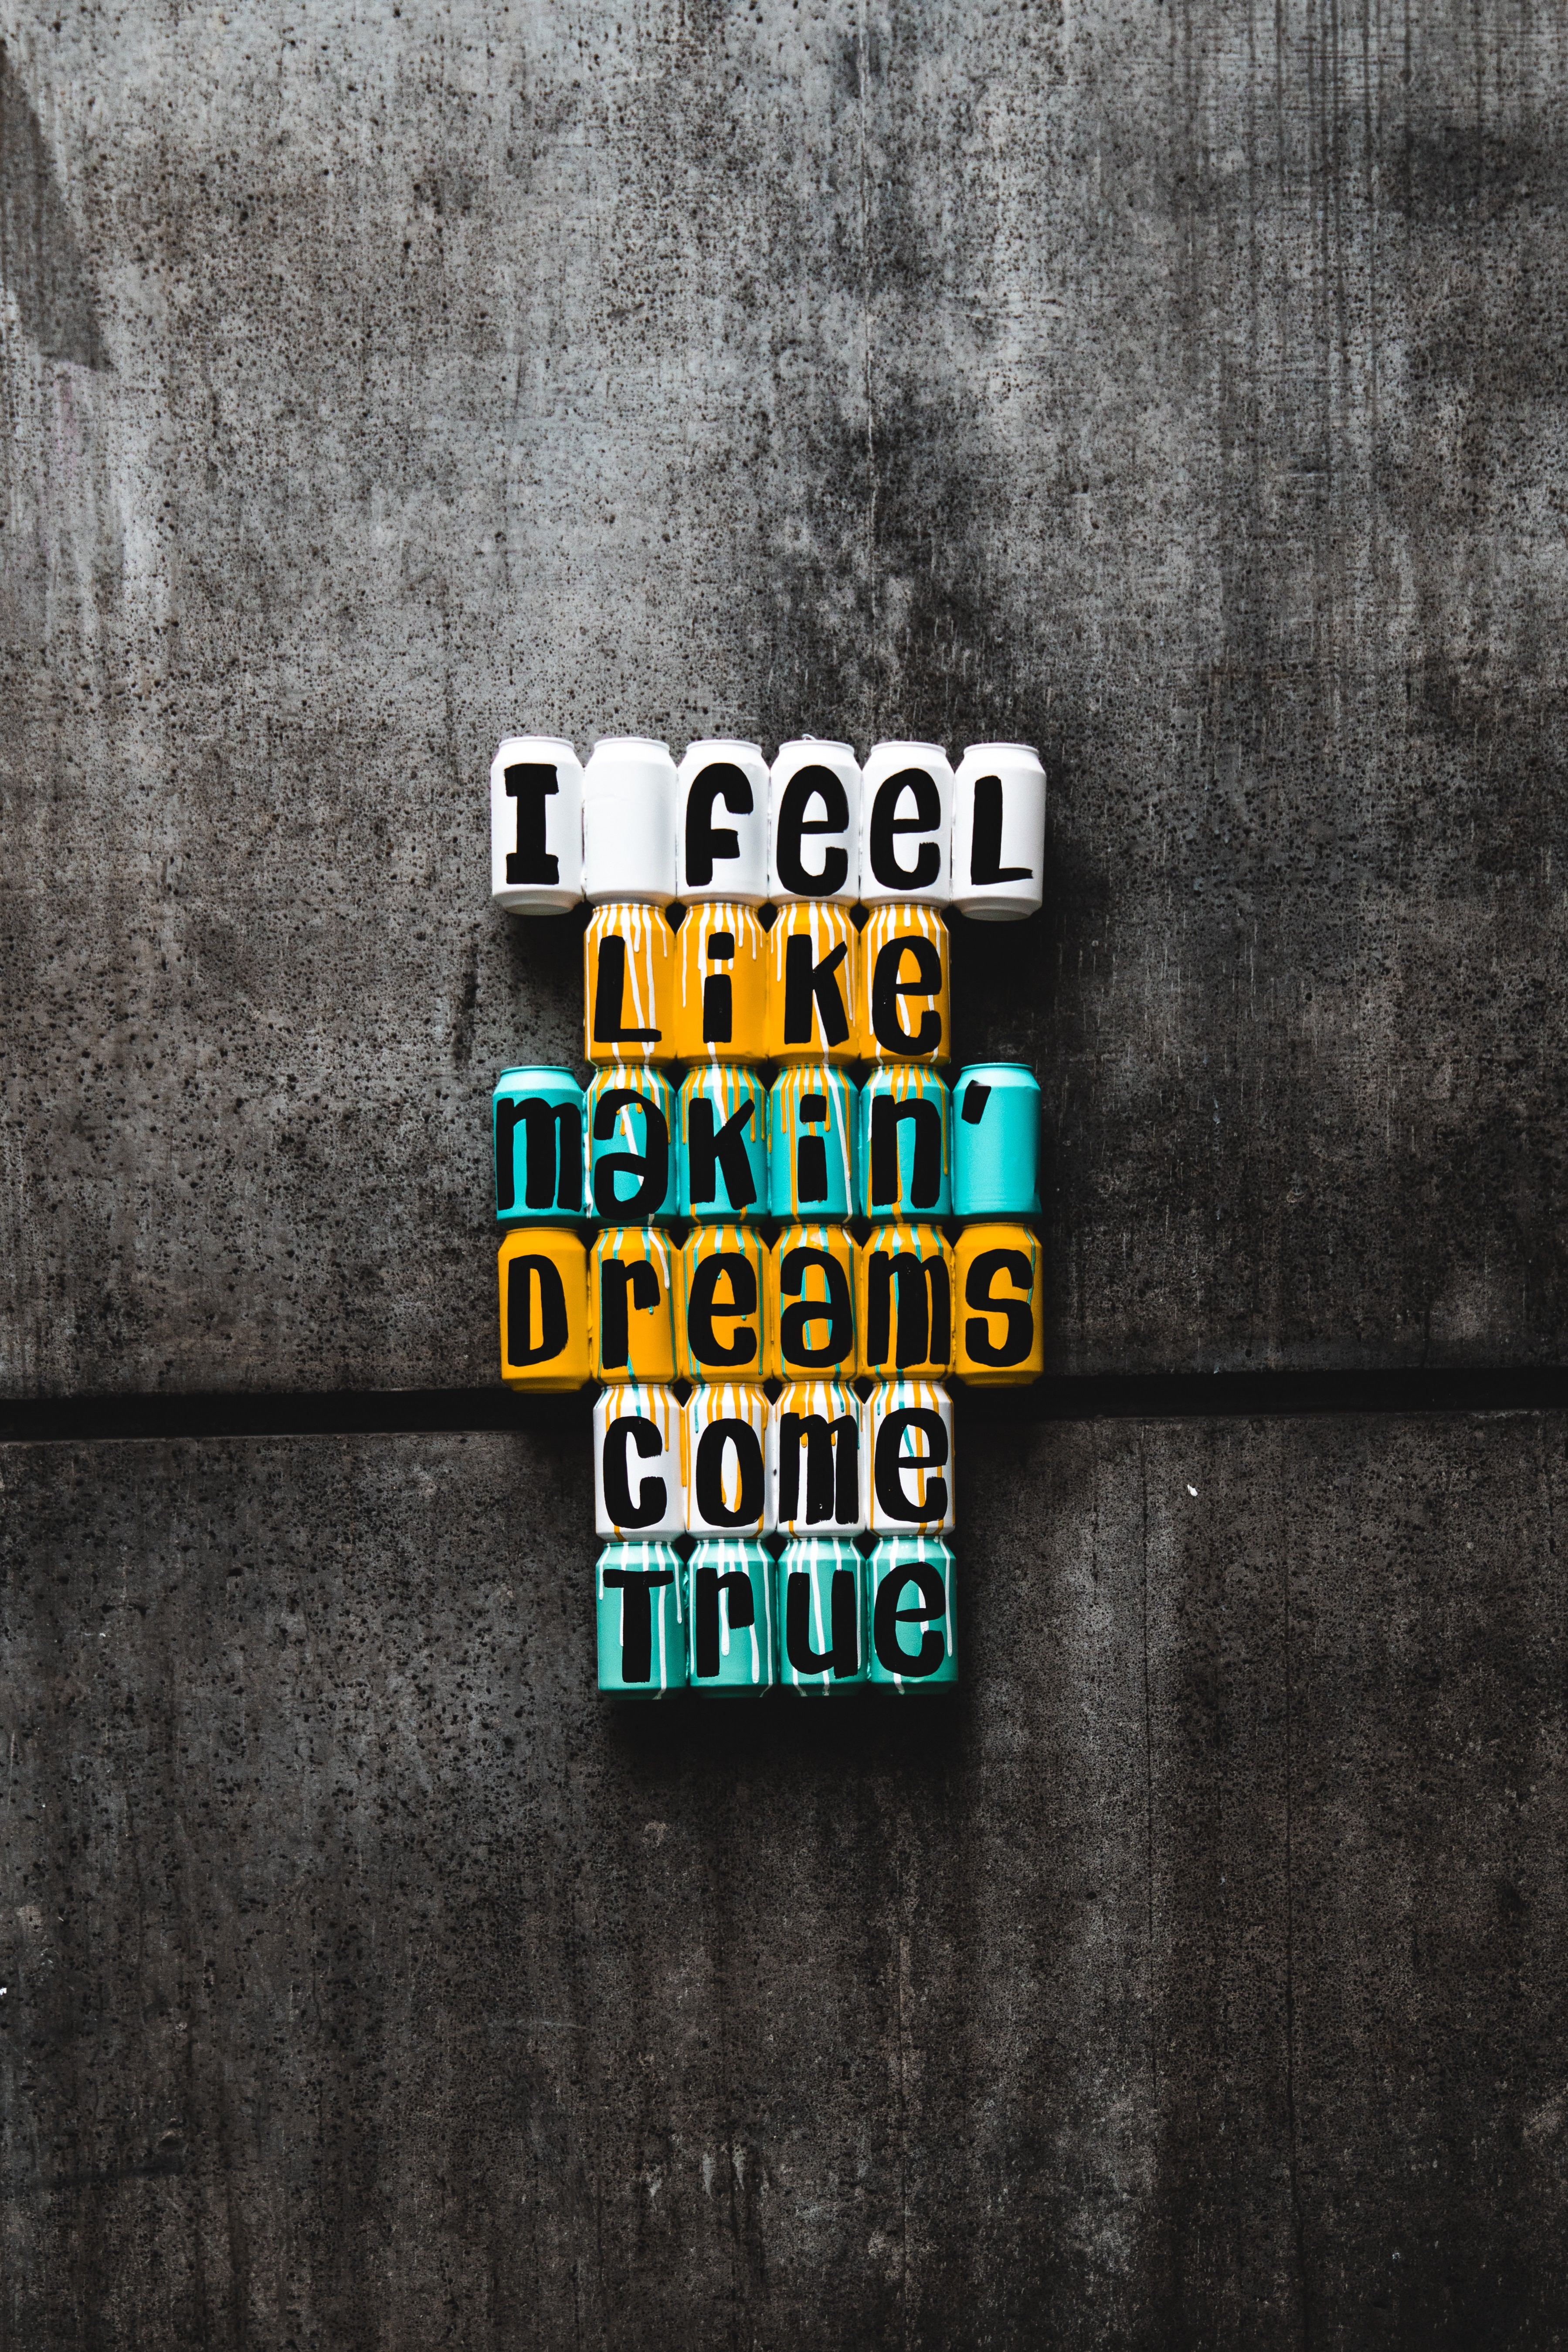 Creative ideas about dreams coming true on a wall